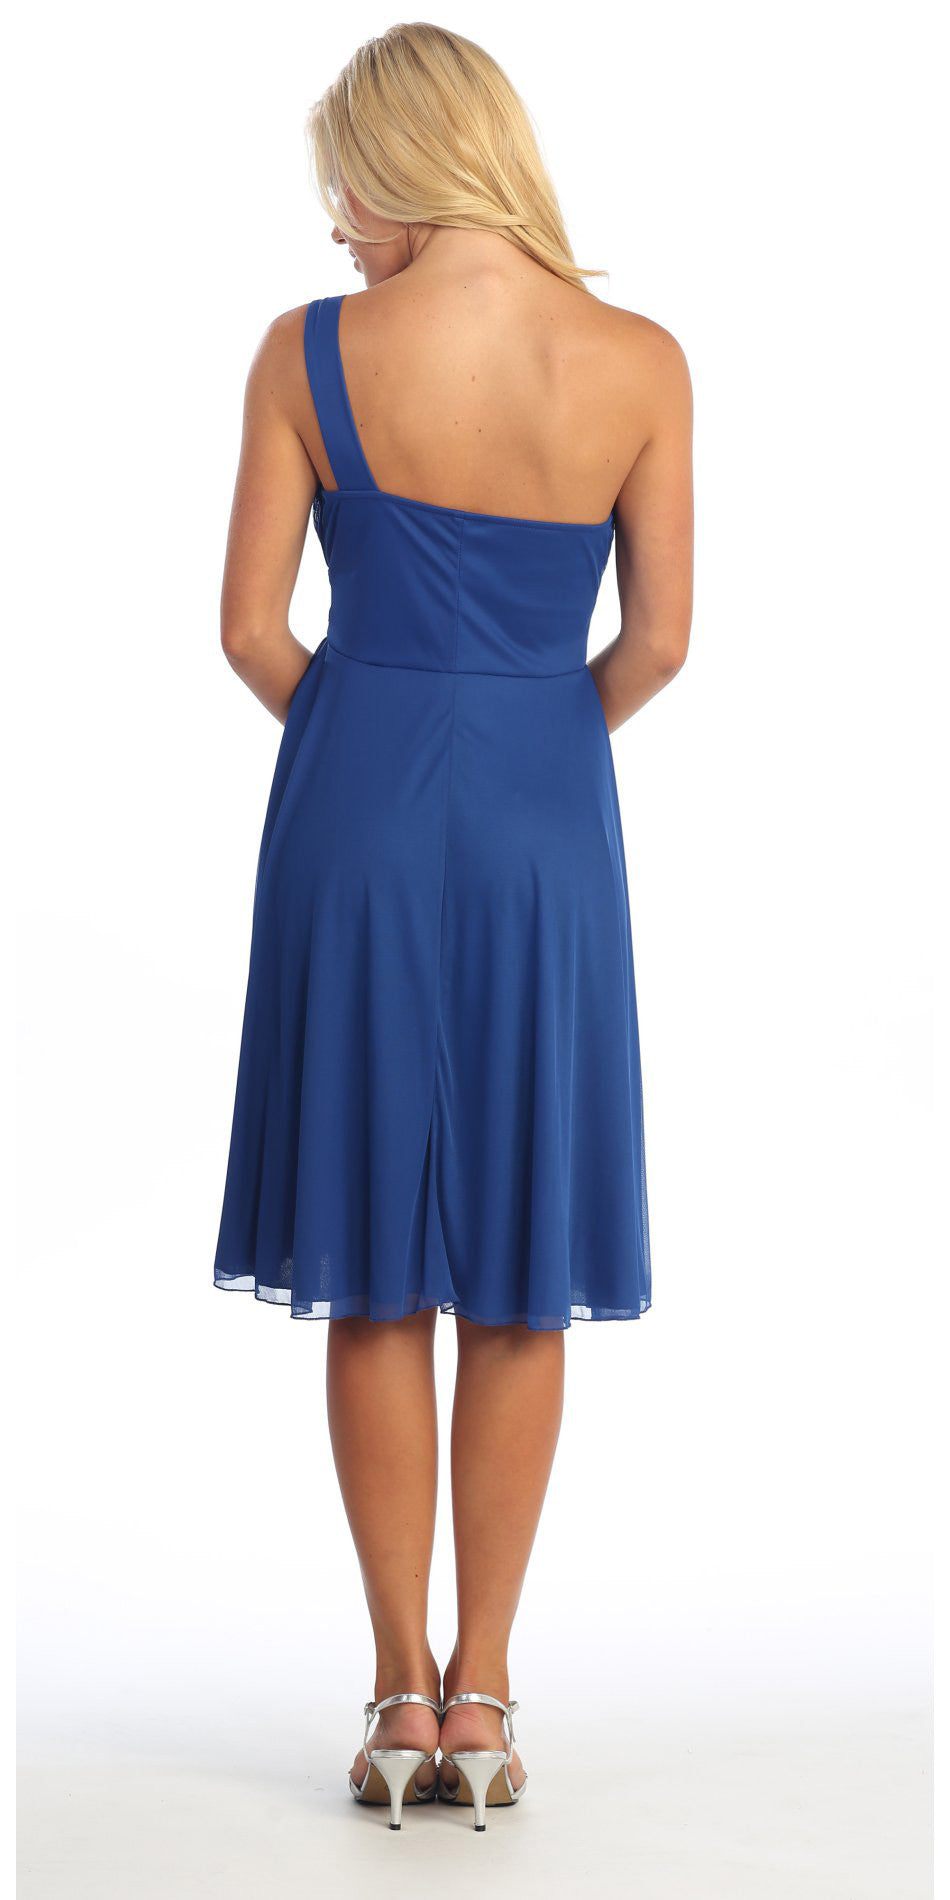 Royal Blue Knee Length Cocktail Dress Chiffon One Shoulder Cruise Dress